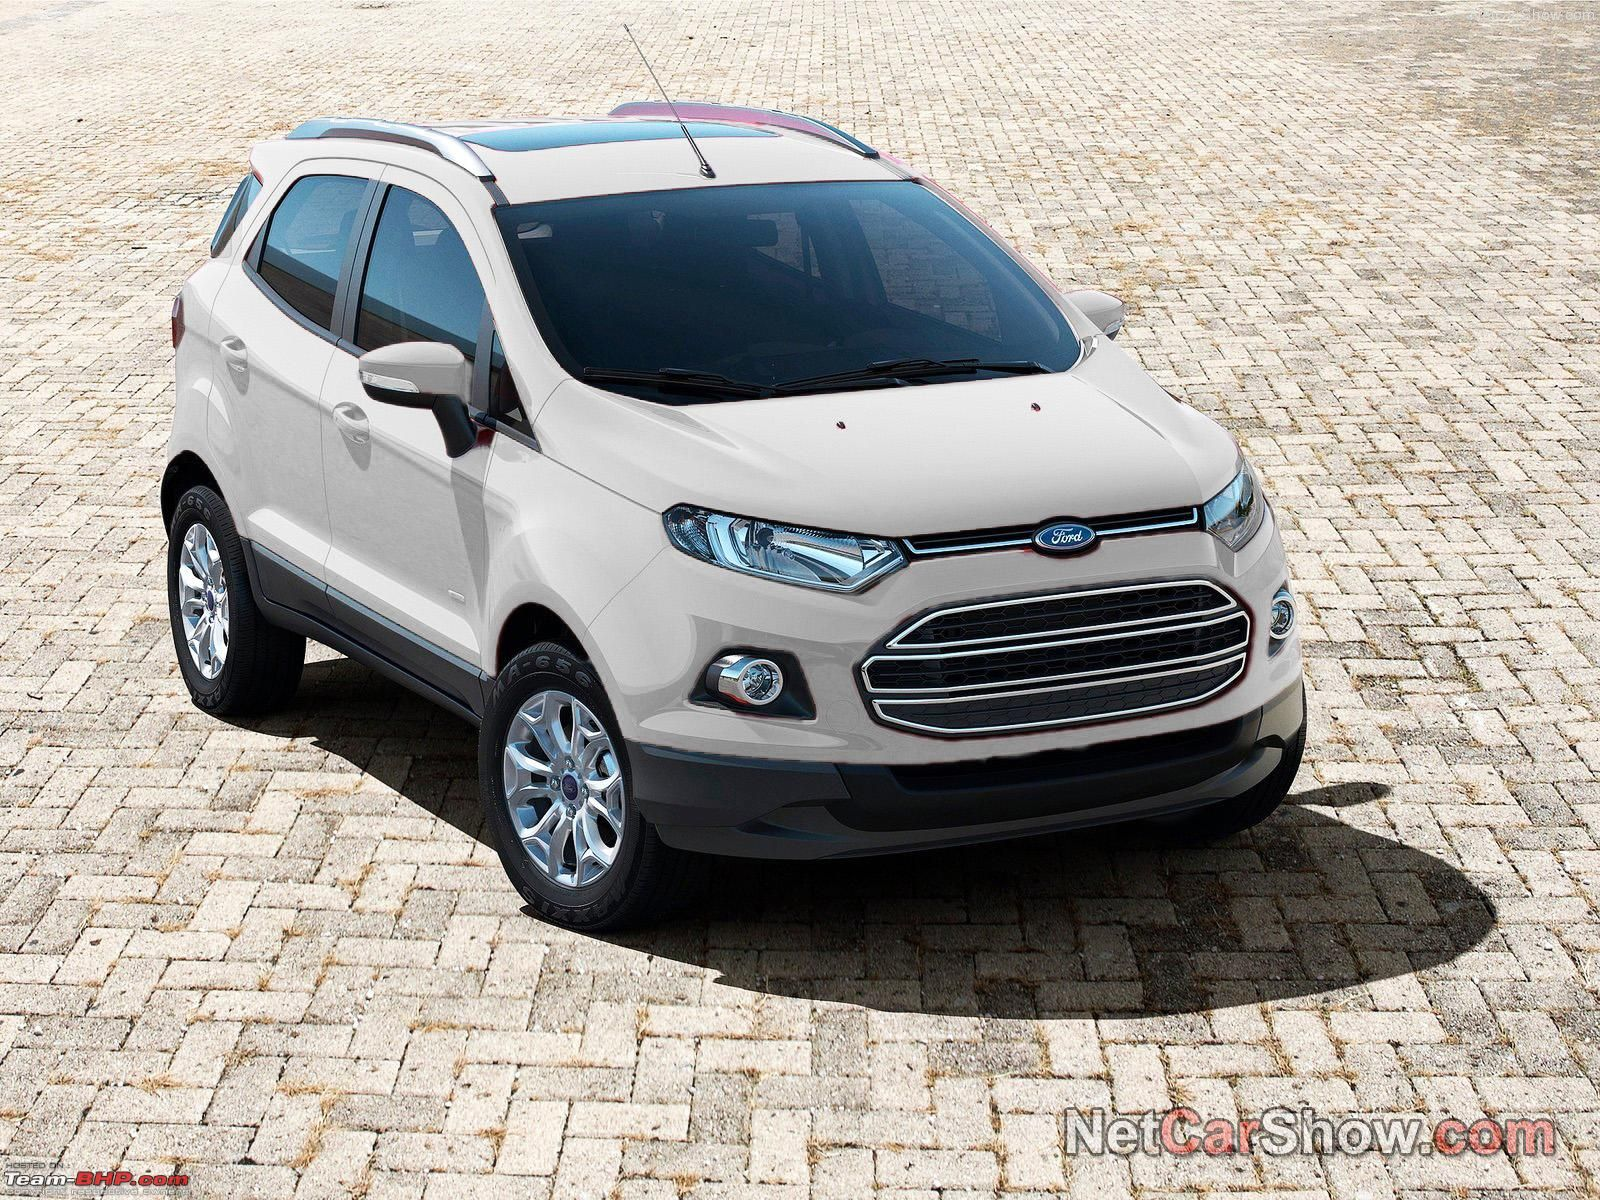 Ford Ecosport 2013 Wallpaper Cas Wallpaper Hd Ford Wallpaper